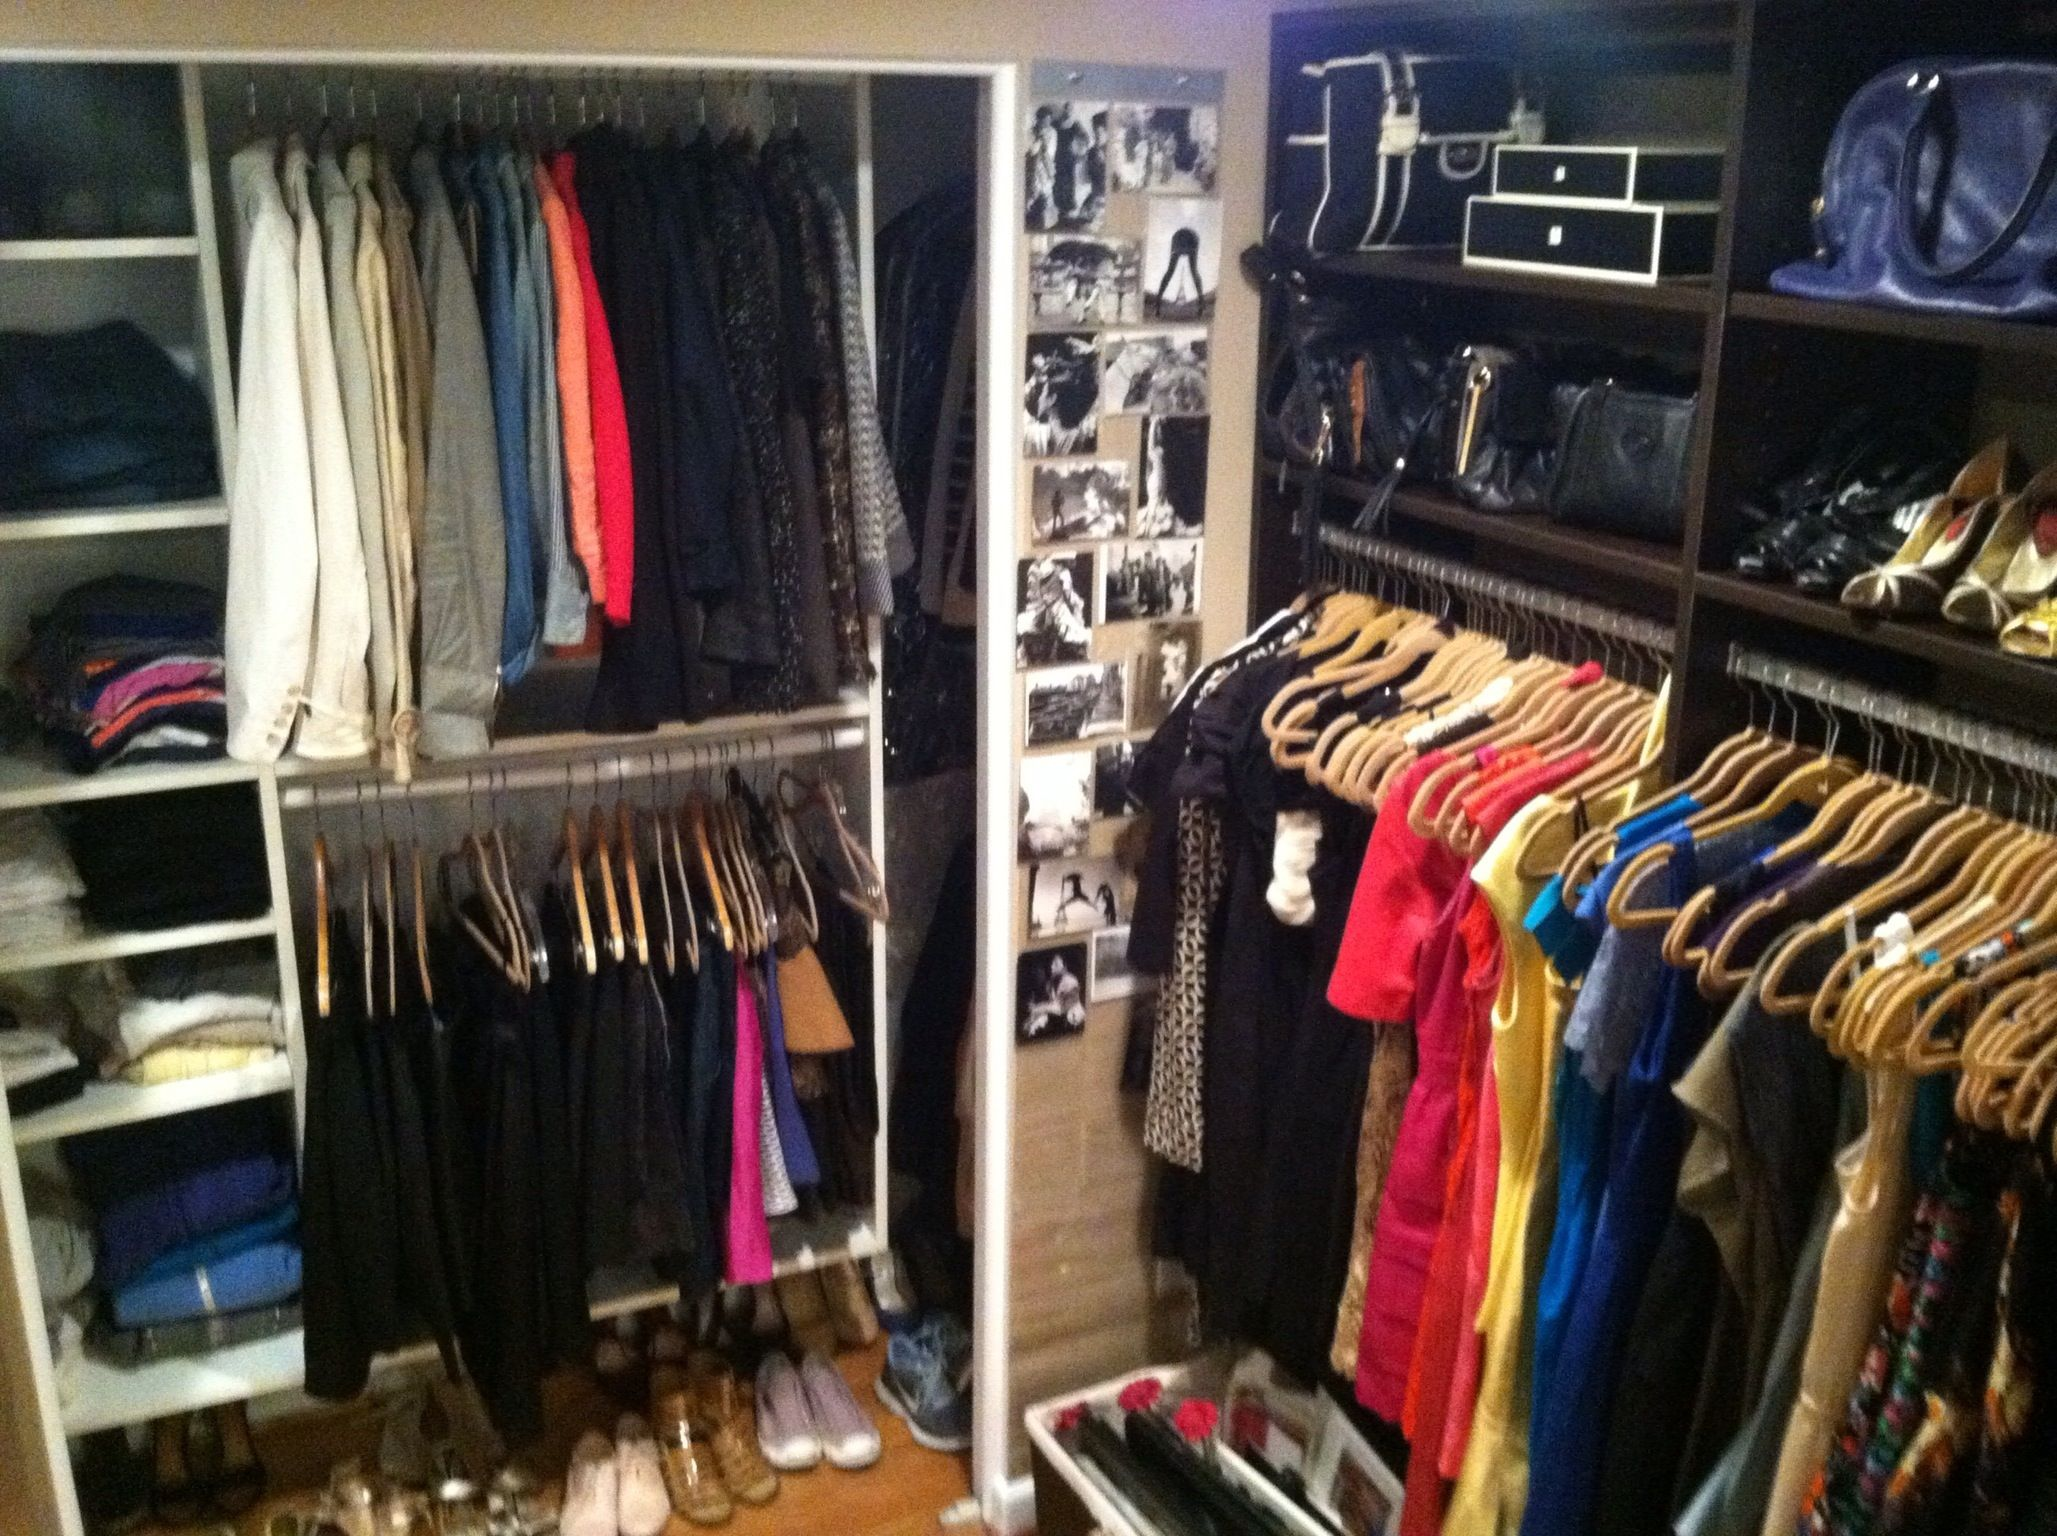 Turn A Spare Room Into A Walk In Closet. More Photos On The Blog